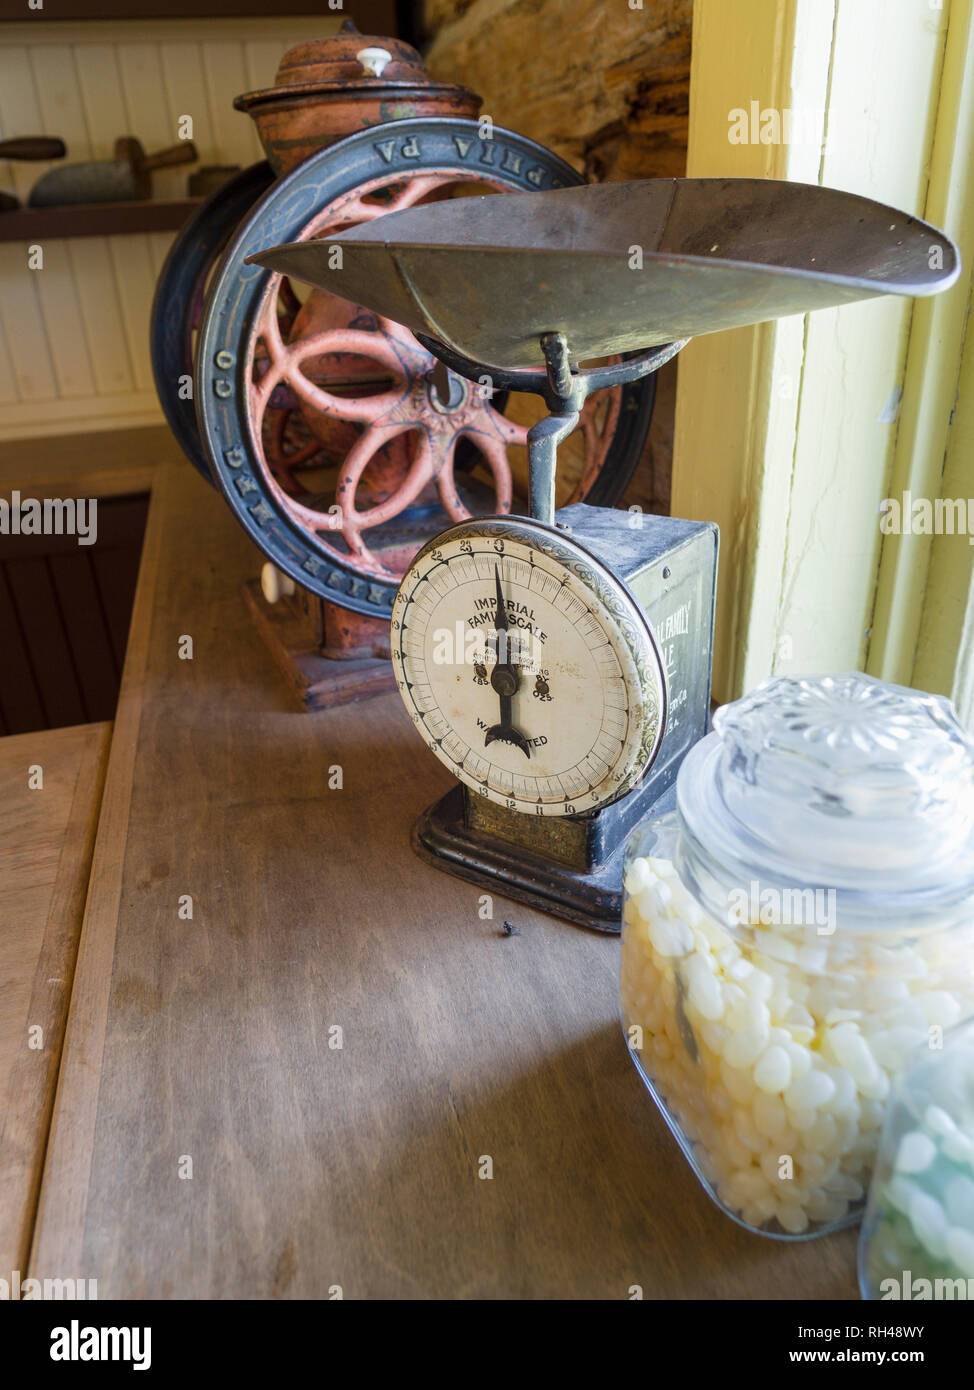 General Store: scale, grinder, jelly beans: The window of an old General Store in Cumberland village featuring jars of jelly beans, an old imperial scale and a hand cranked coffee grinder. - Stock Image